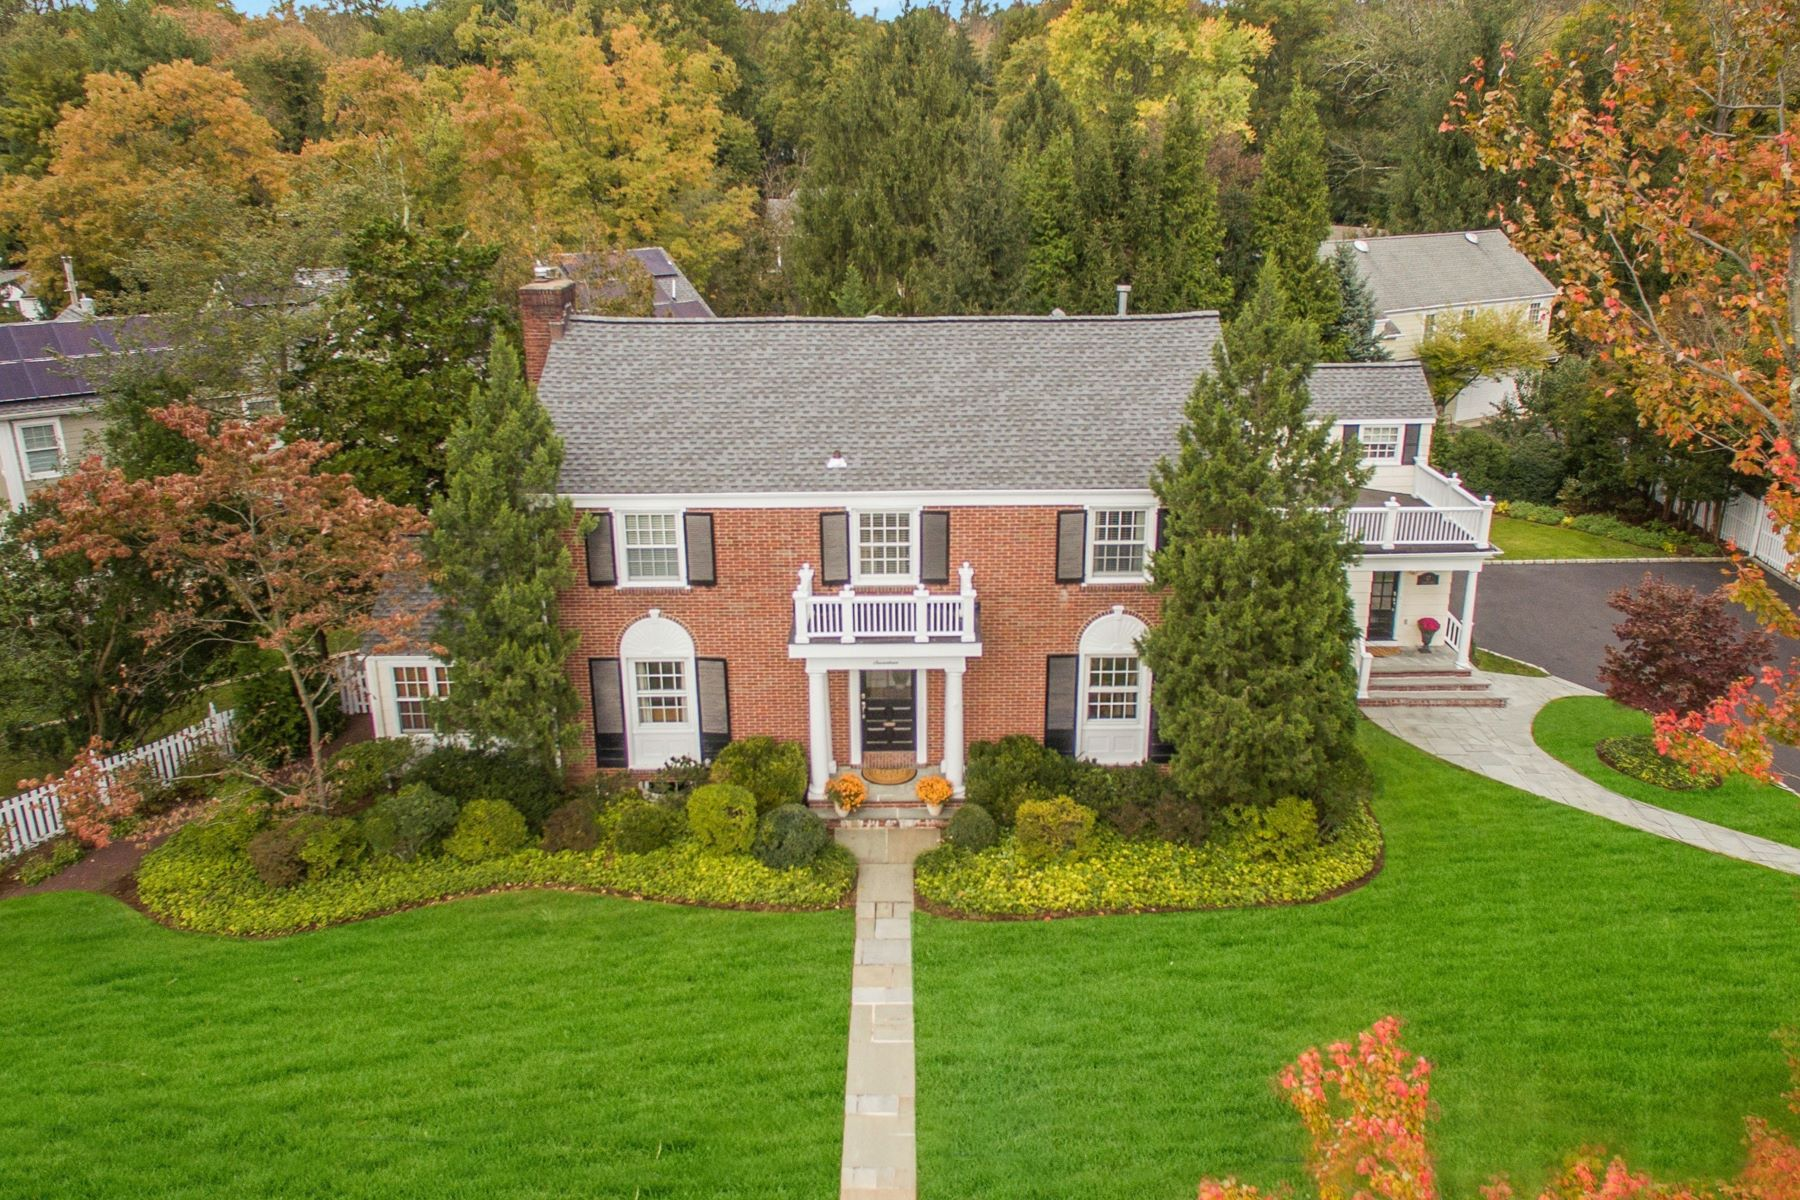 Single Family Home for Sale at Classic Brick Colonial 17 Crescent Place, Short Hills, New Jersey 07078 United States